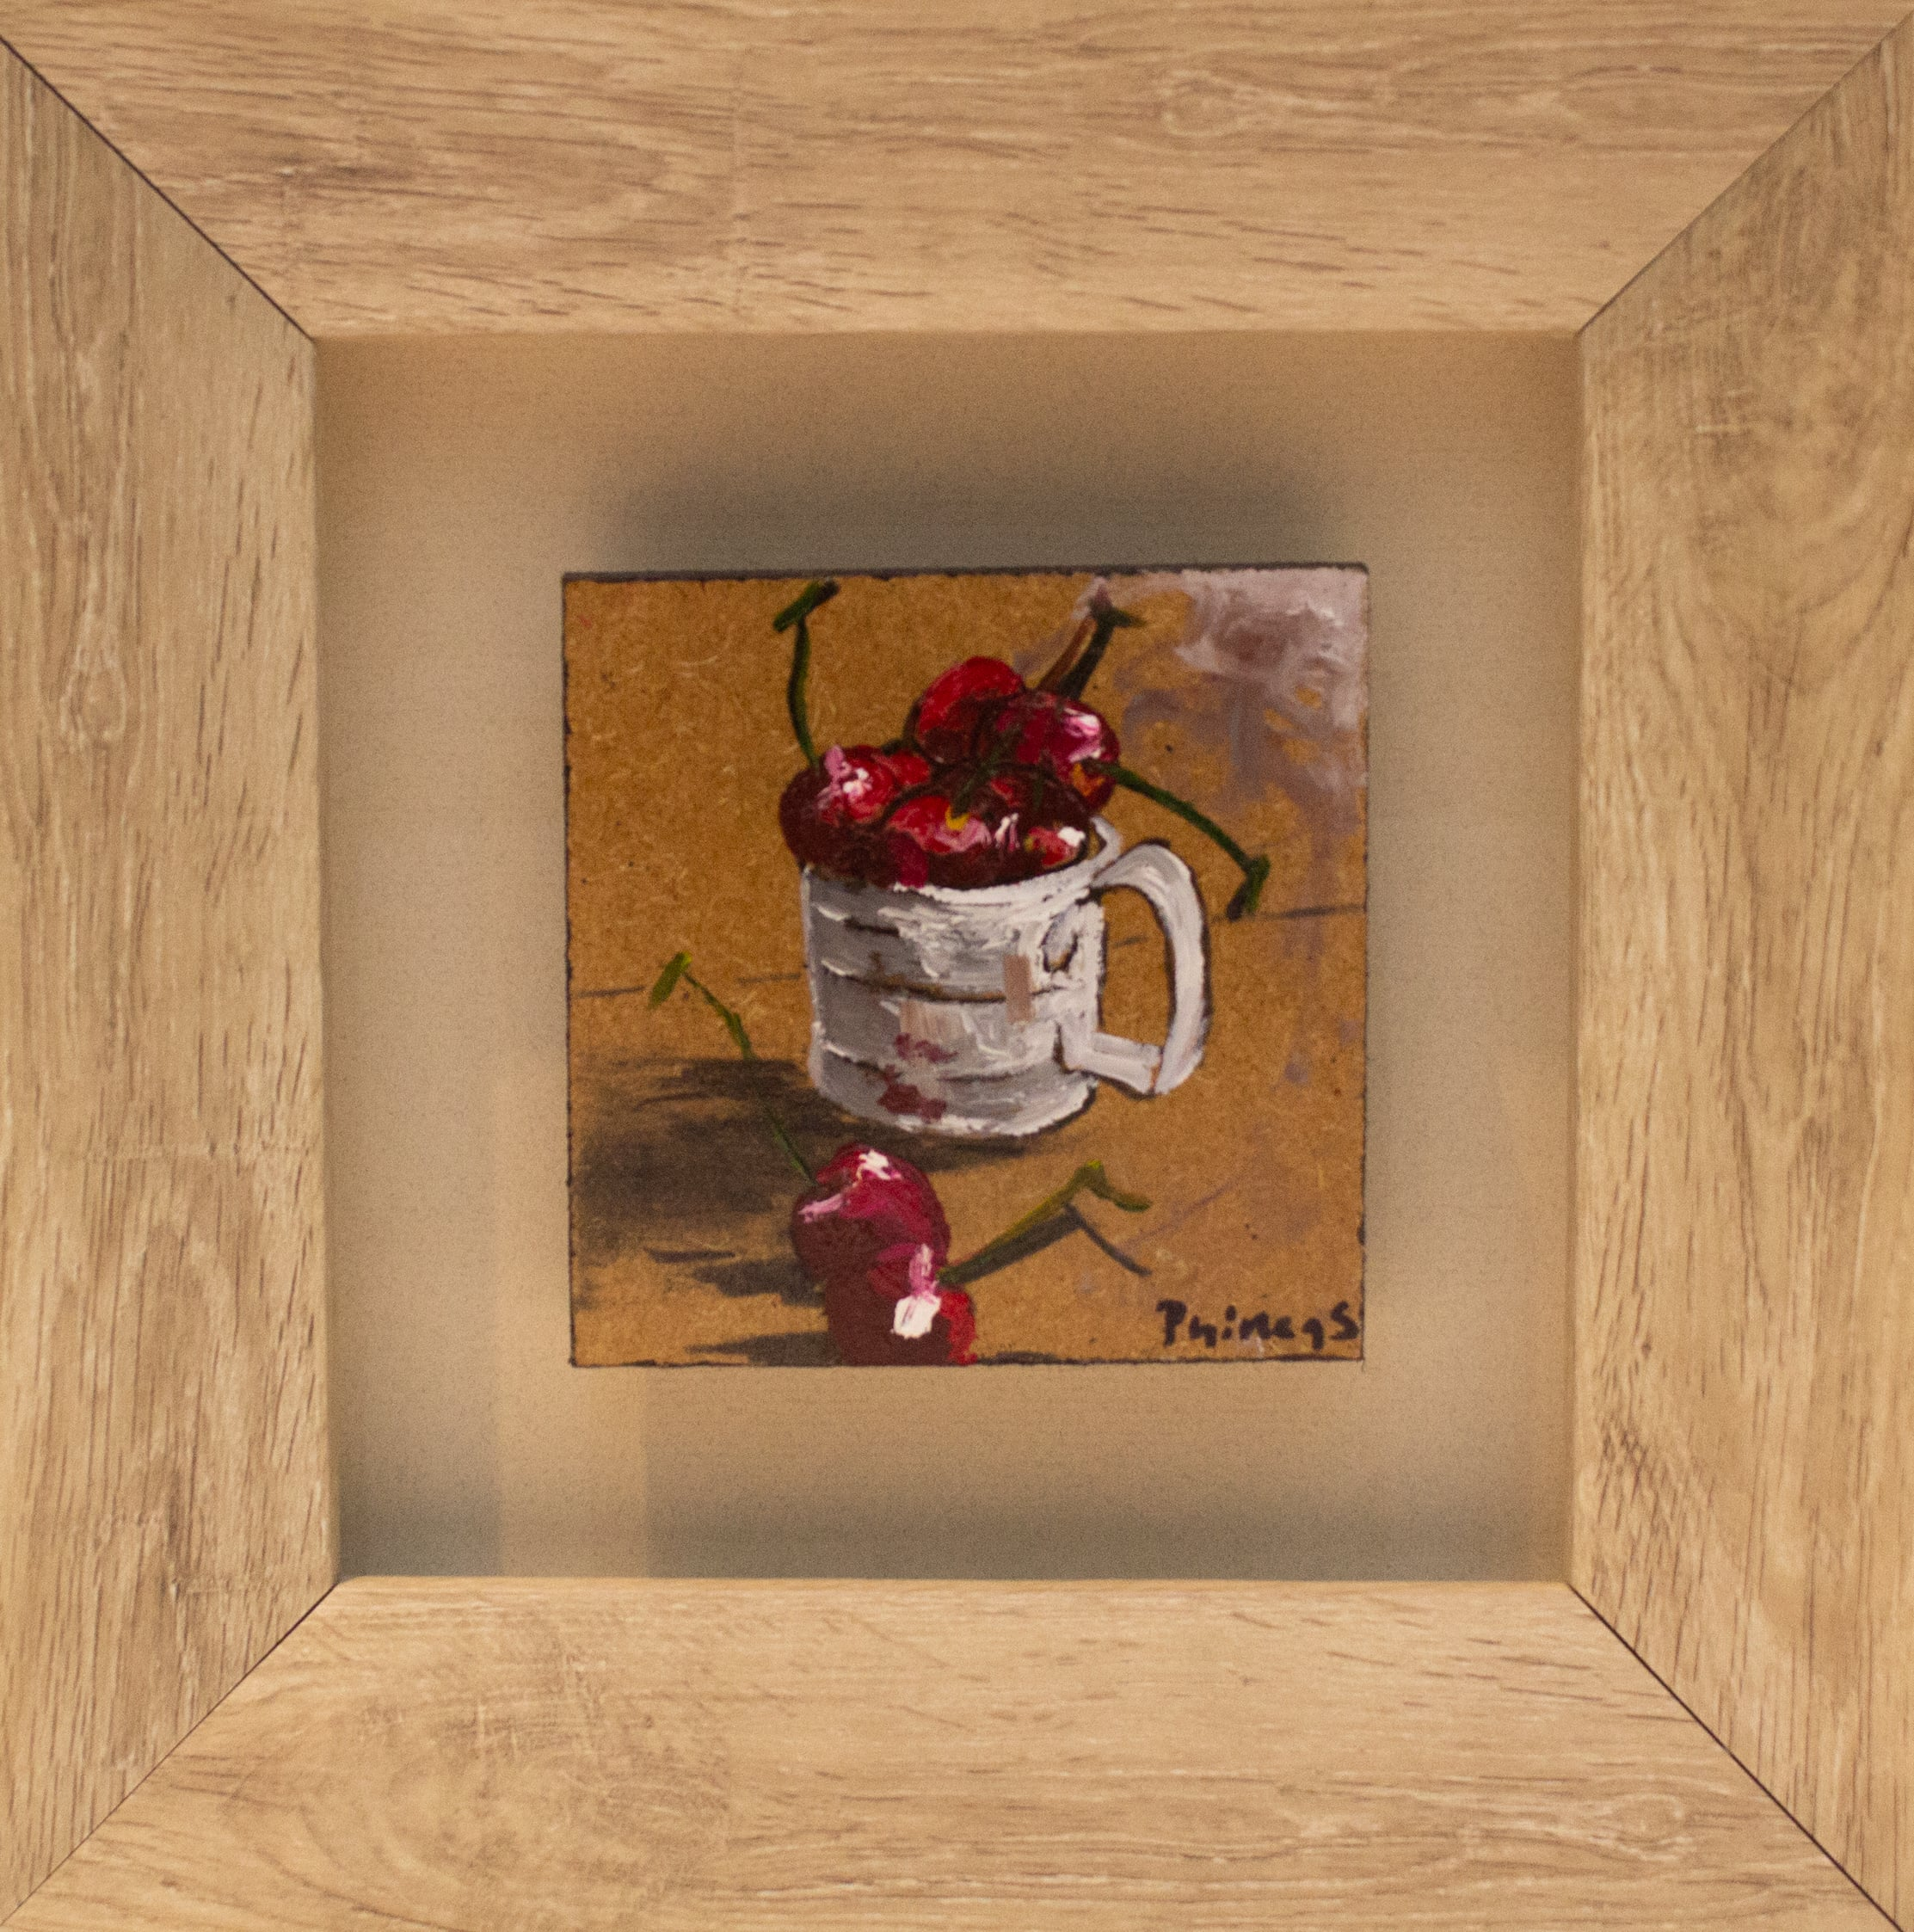 <span class=&#34;link fancybox-details-link&#34;><a href=&#34;/artists/102-phineas-malema/works/2712-phineas-malema-red-cherries-in-a-cup-2017/&#34;>View Detail Page</a></span><div class=&#34;artist&#34;><strong>Phineas Malema</strong></div> <div class=&#34;title&#34;><em>Red Cherries In A Cup</em>, 2017</div> <div class=&#34;medium&#34;>Oil On Board</div> <div class=&#34;dimensions&#34;>24cm x 24cm x 4.5cm</div><div class=&#34;price&#34;>R700.00</div>